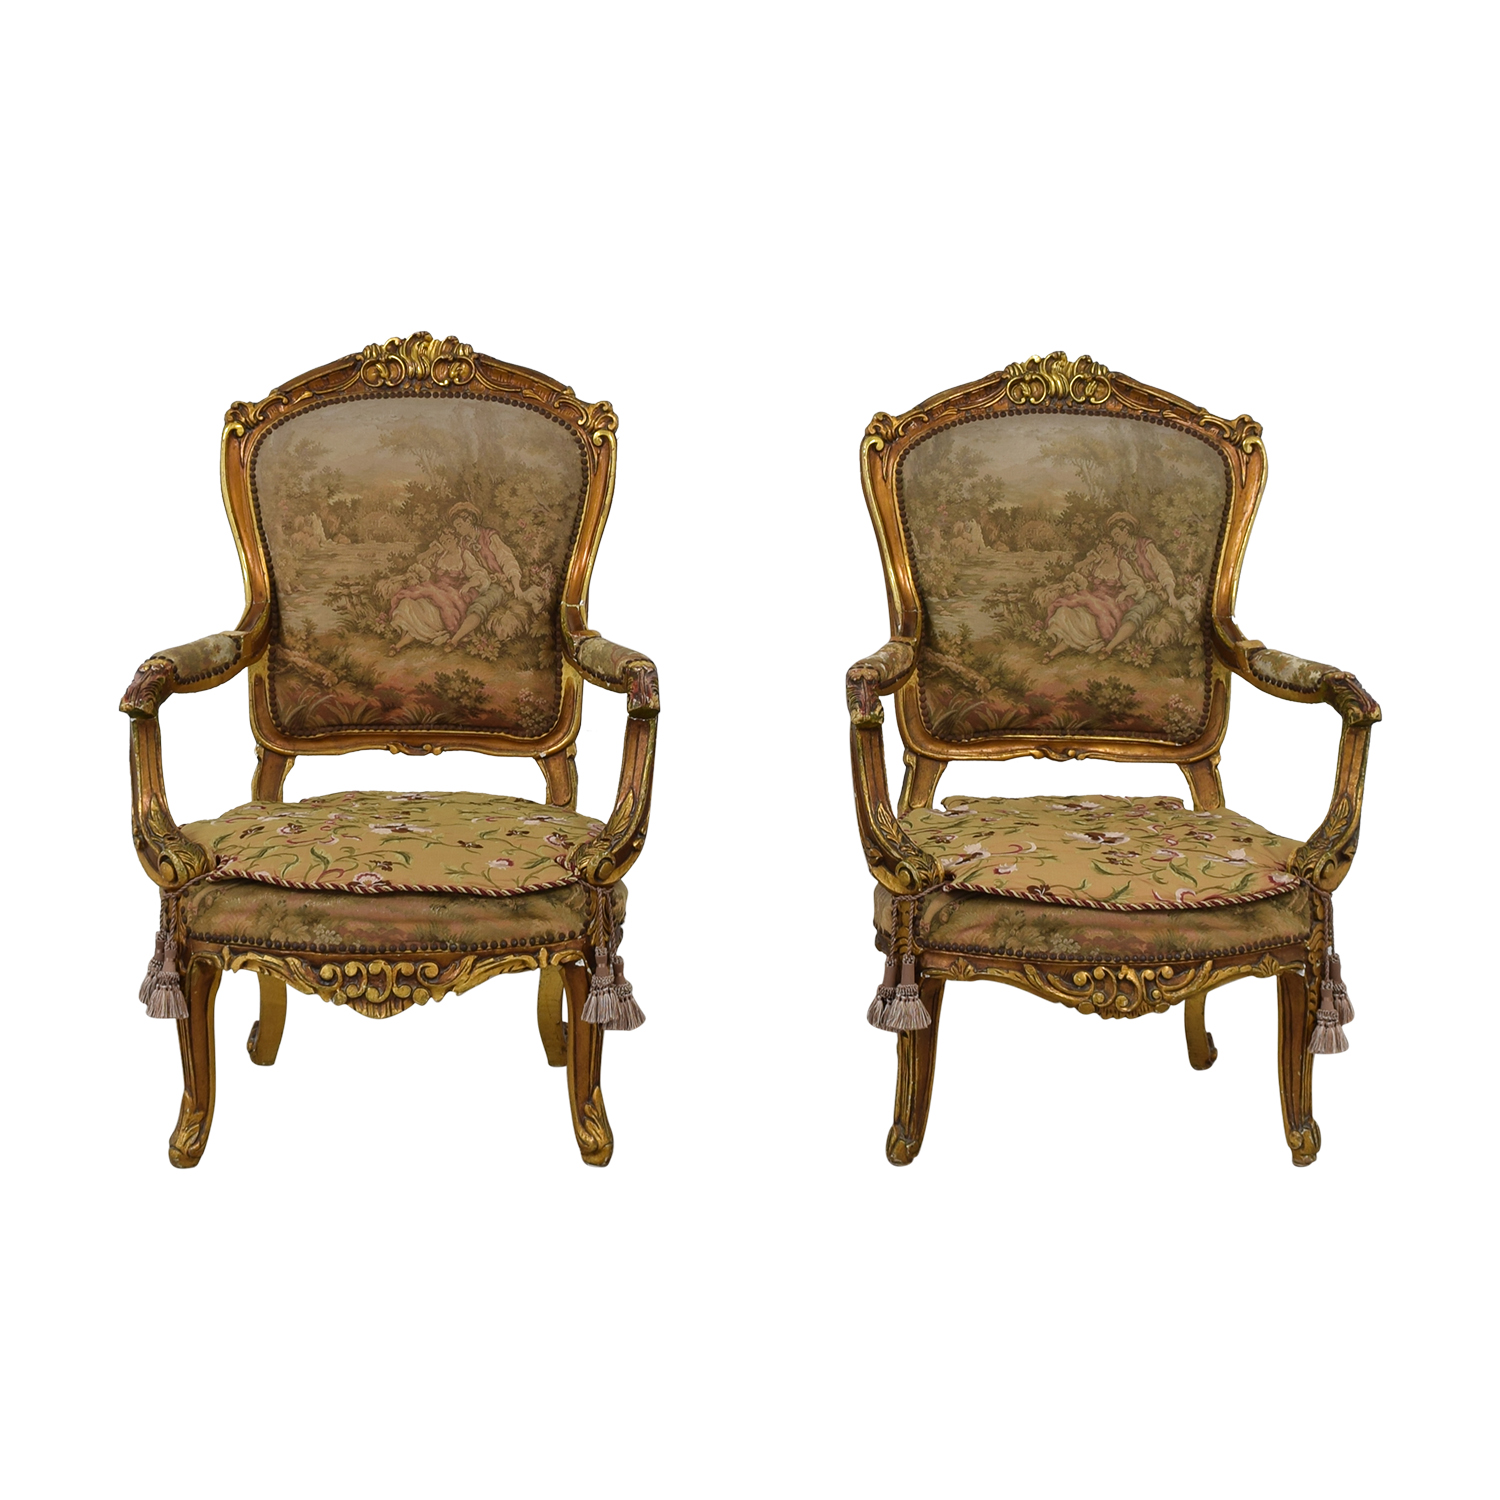 Antique Accent Chairs 79 Off Distressed Antique Louis Xv Accent Chairs Chairs